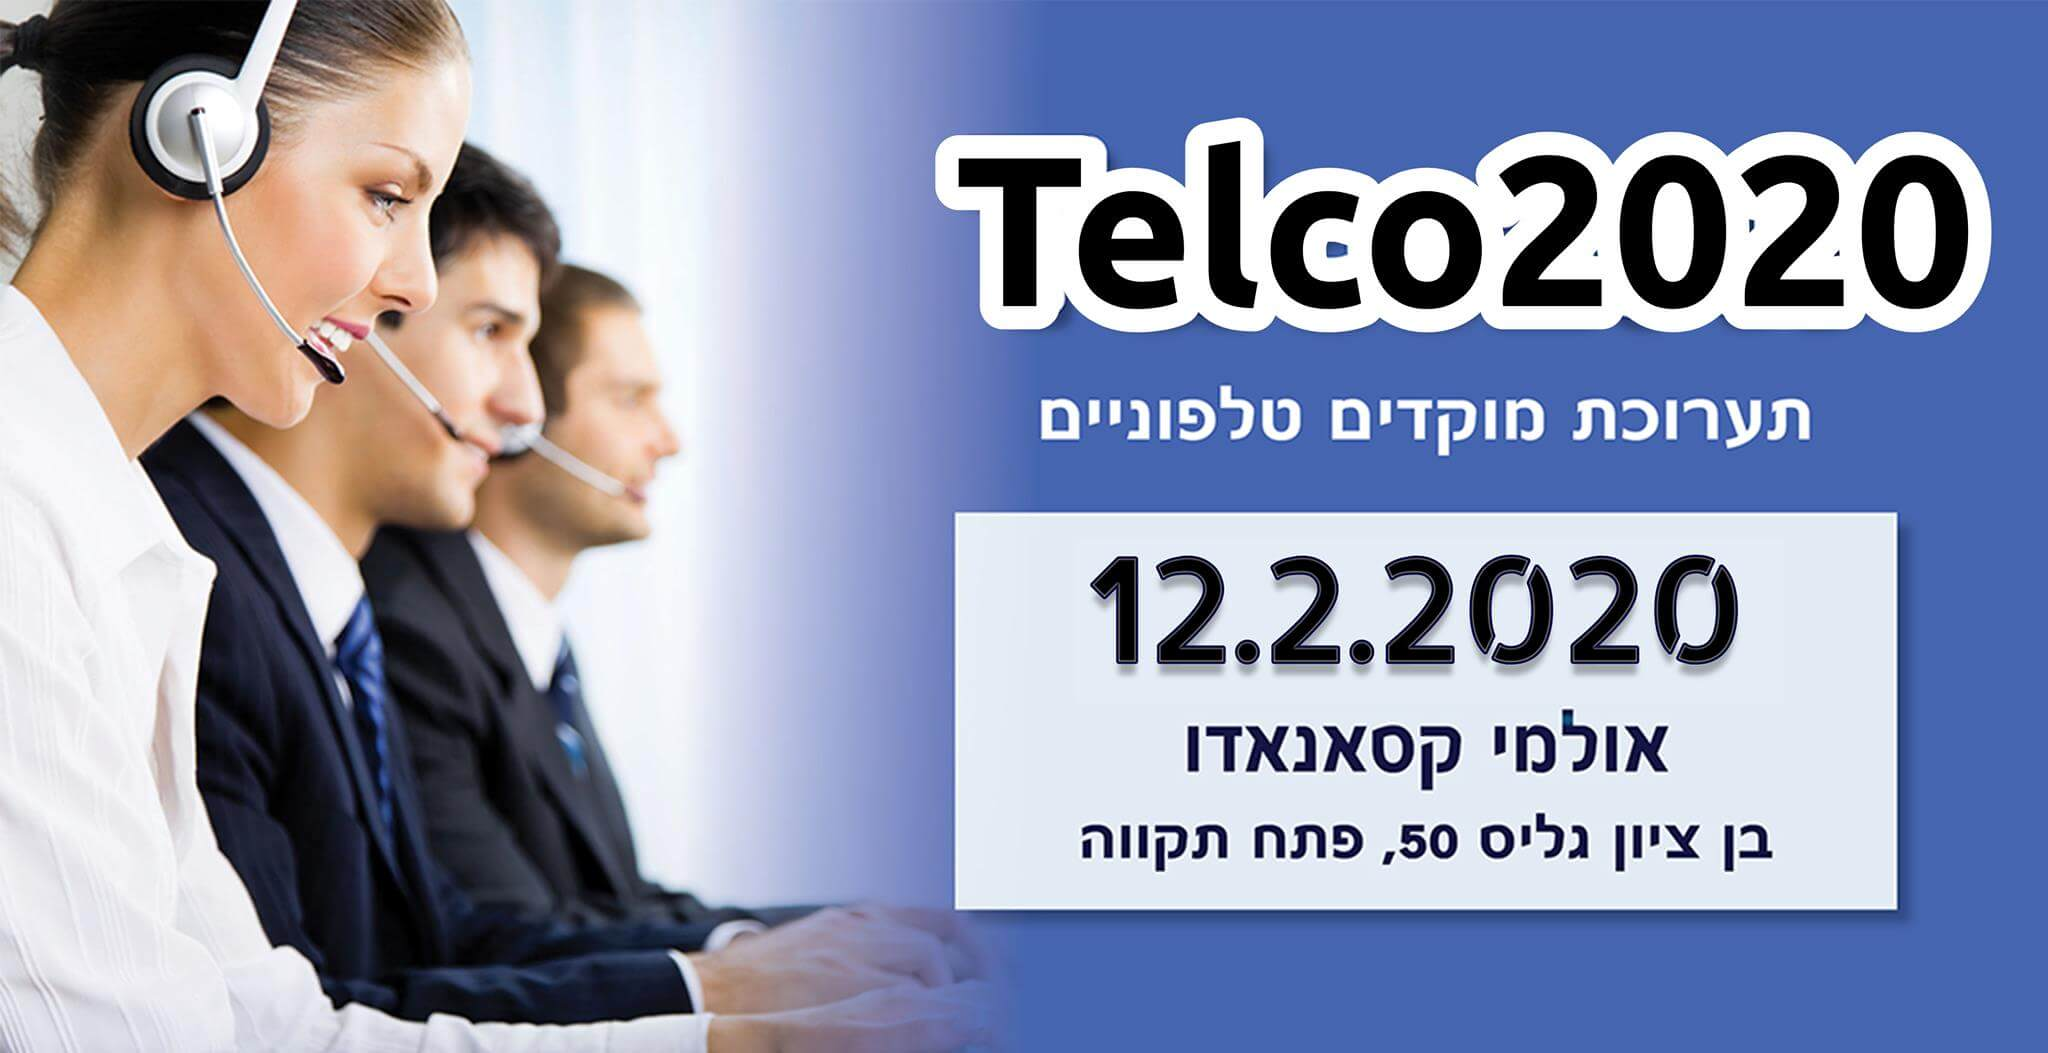 getter telco2020